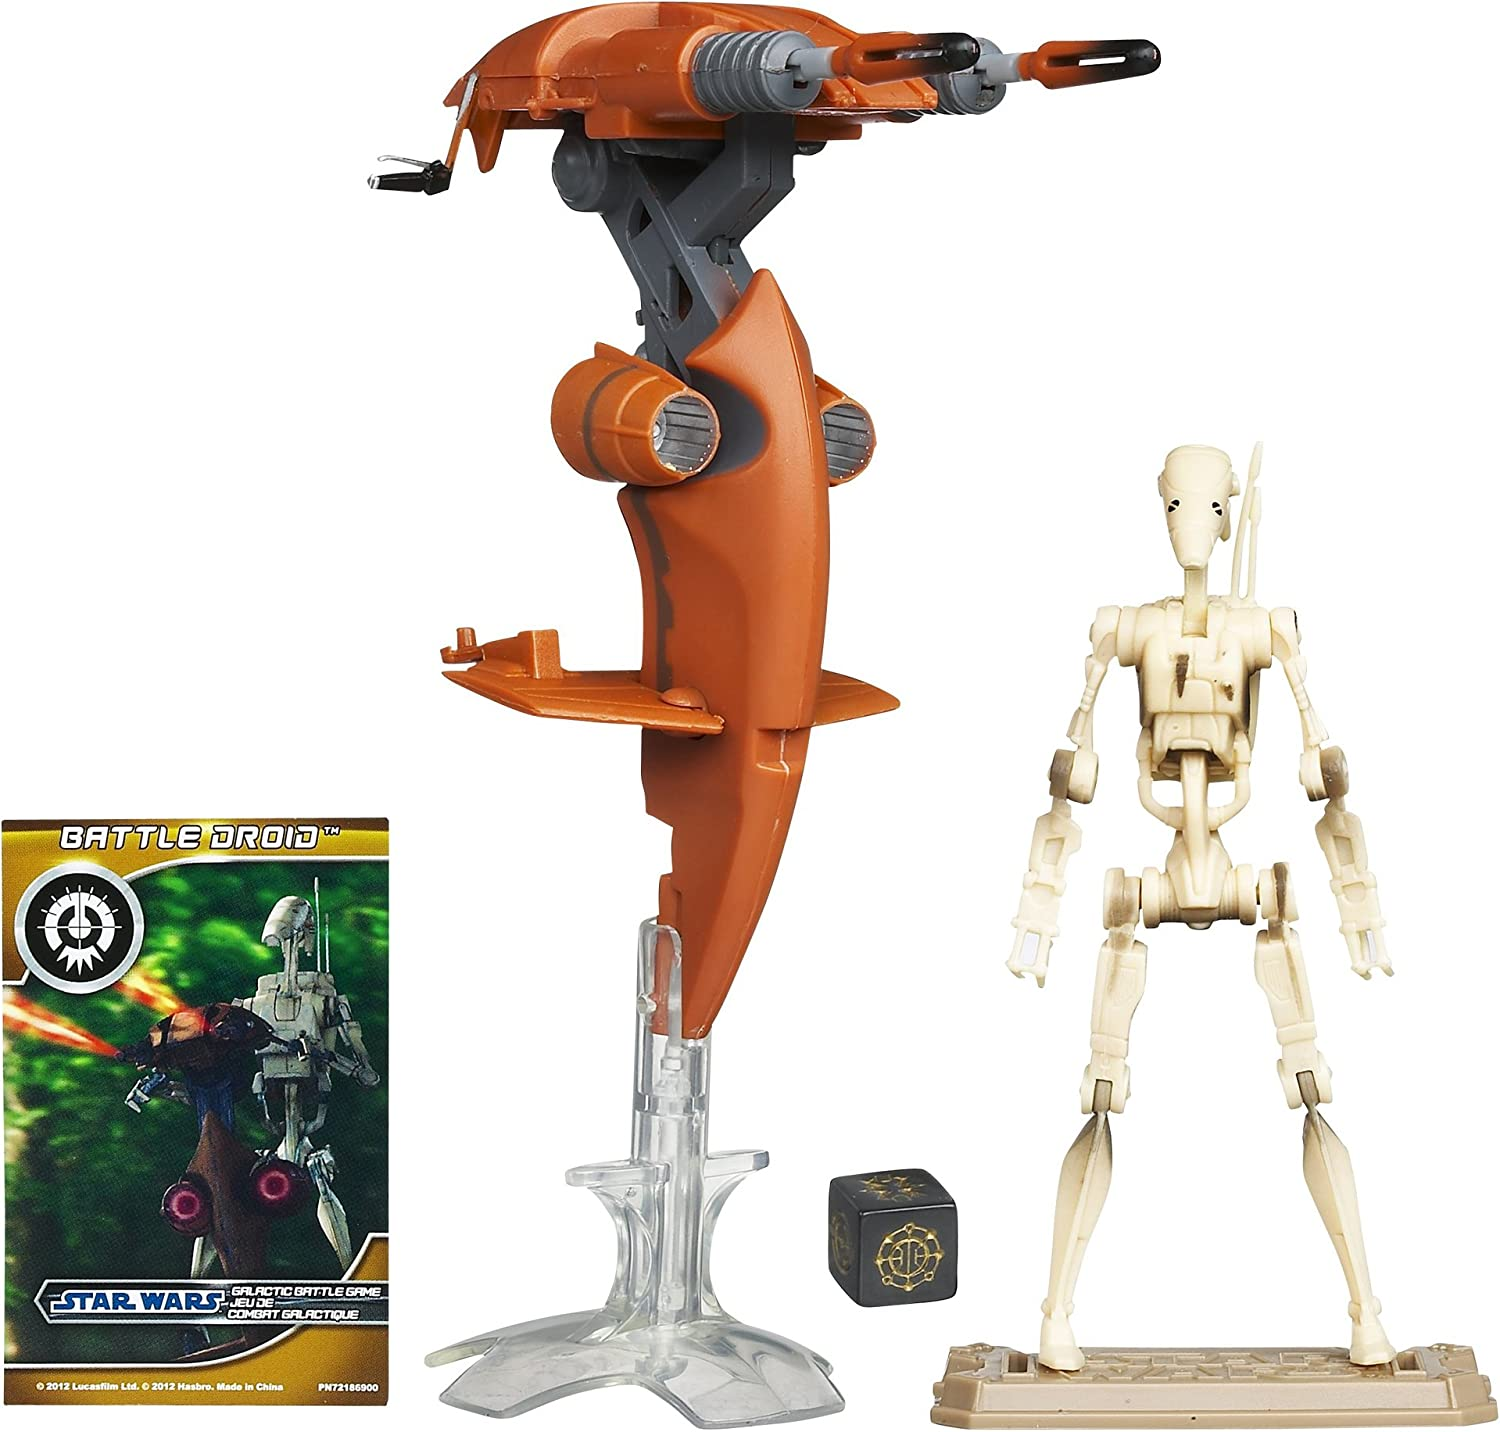 STAR WARS VEHICLE PARTS EP1 STAP MISSILE FOR 3.75 INCH FIGURES